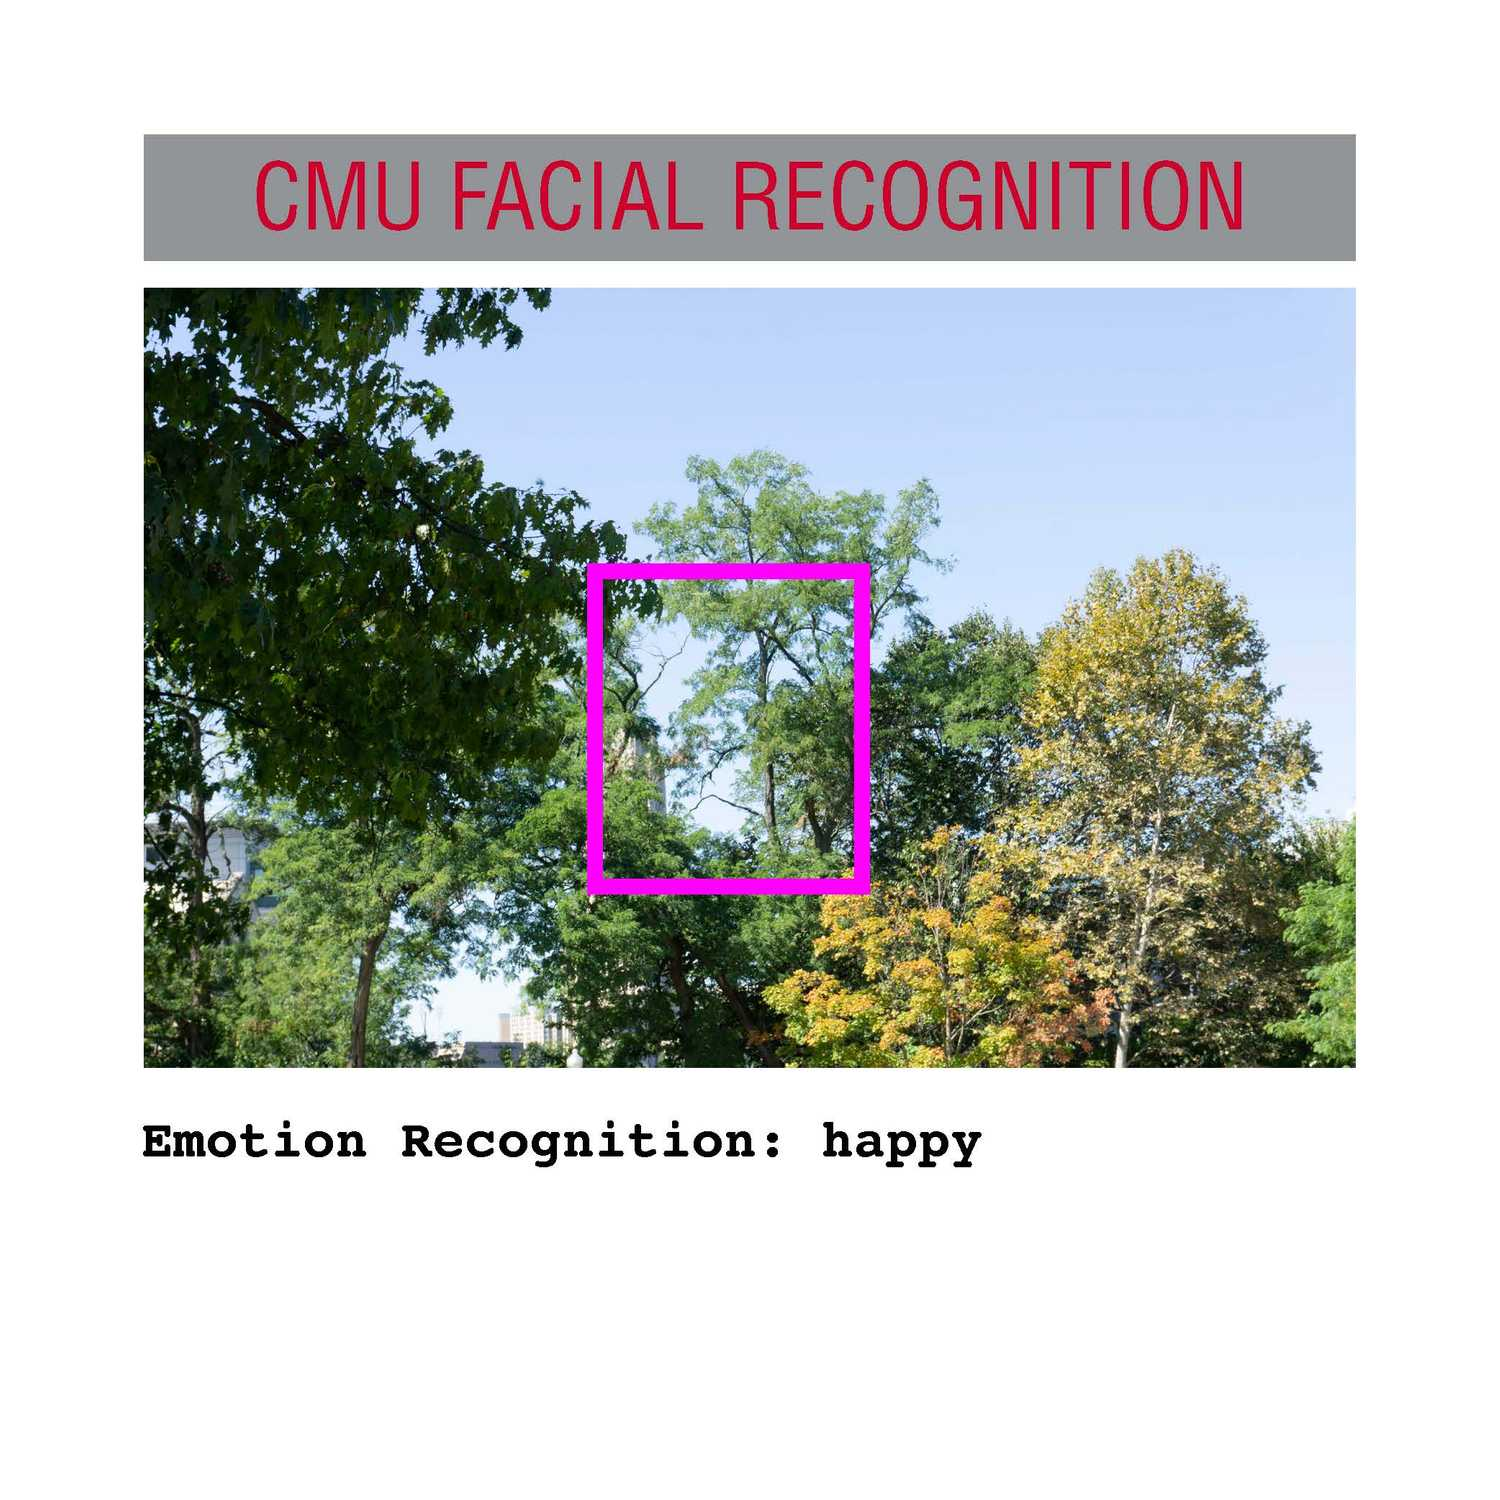 facial recognition Page 31